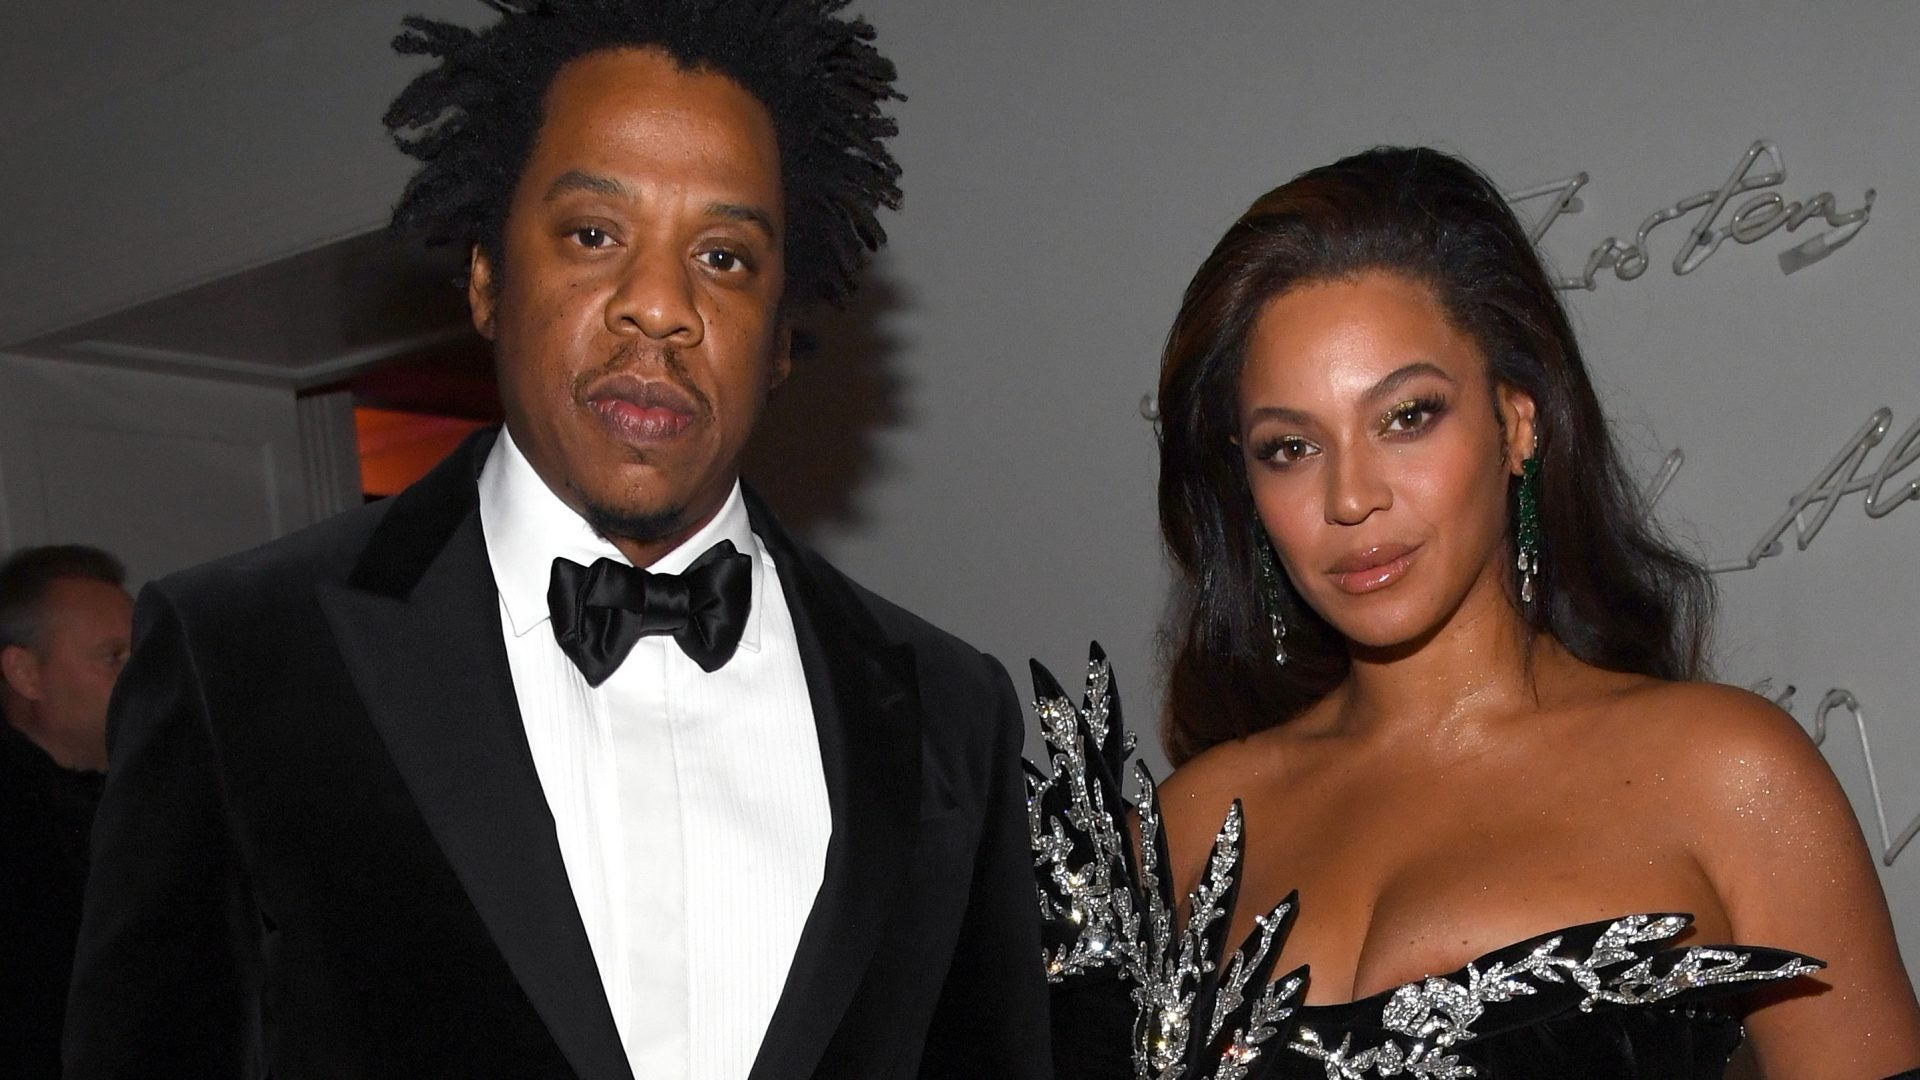 Jay-Z More 'Determined To Fight For Justice' Following George Floyd's Murder